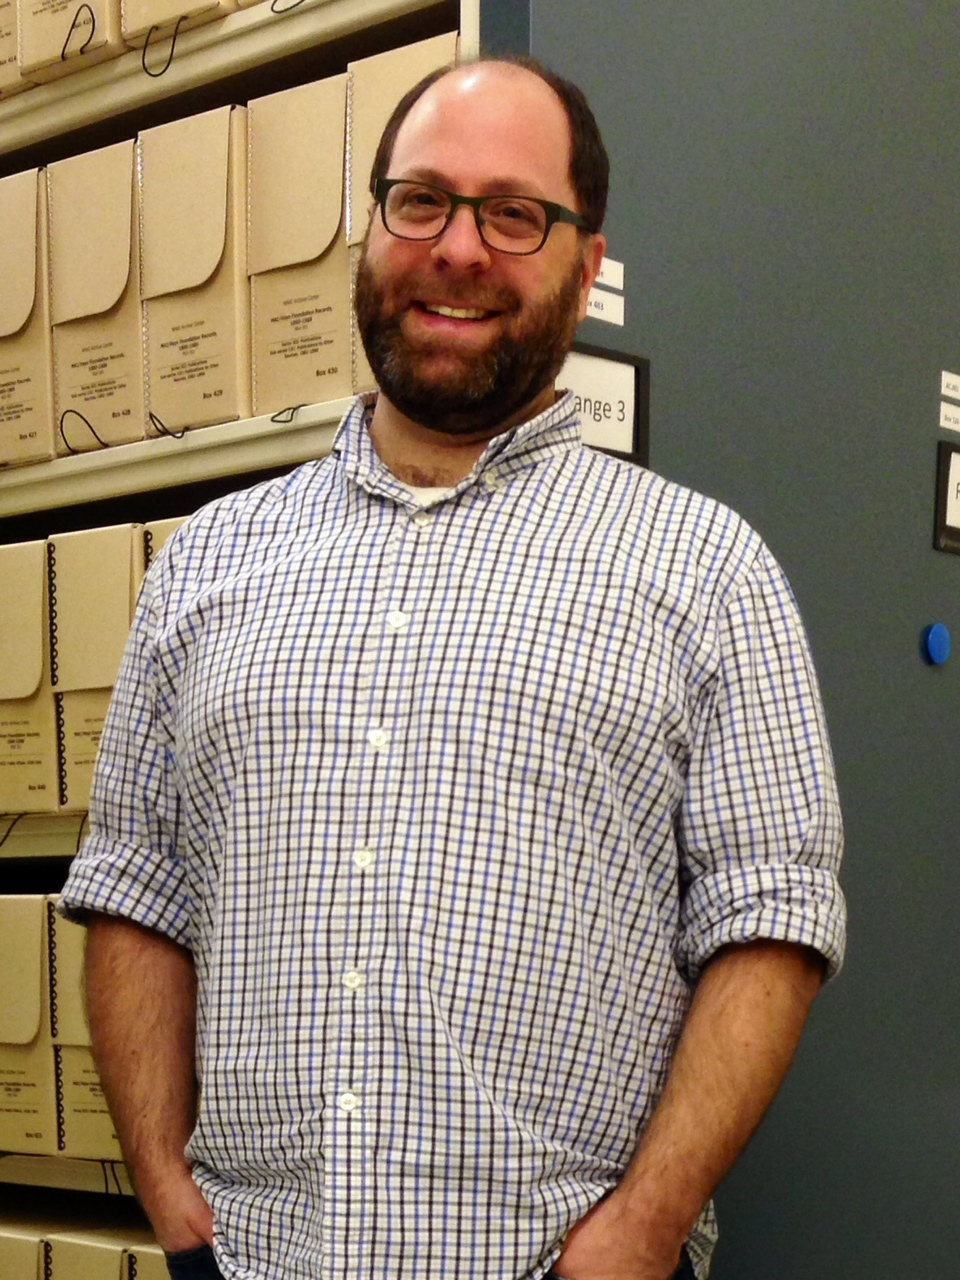 Michael Pahn, Head Archivist, Smithsonian's National Museum of the American Indian Archive Center